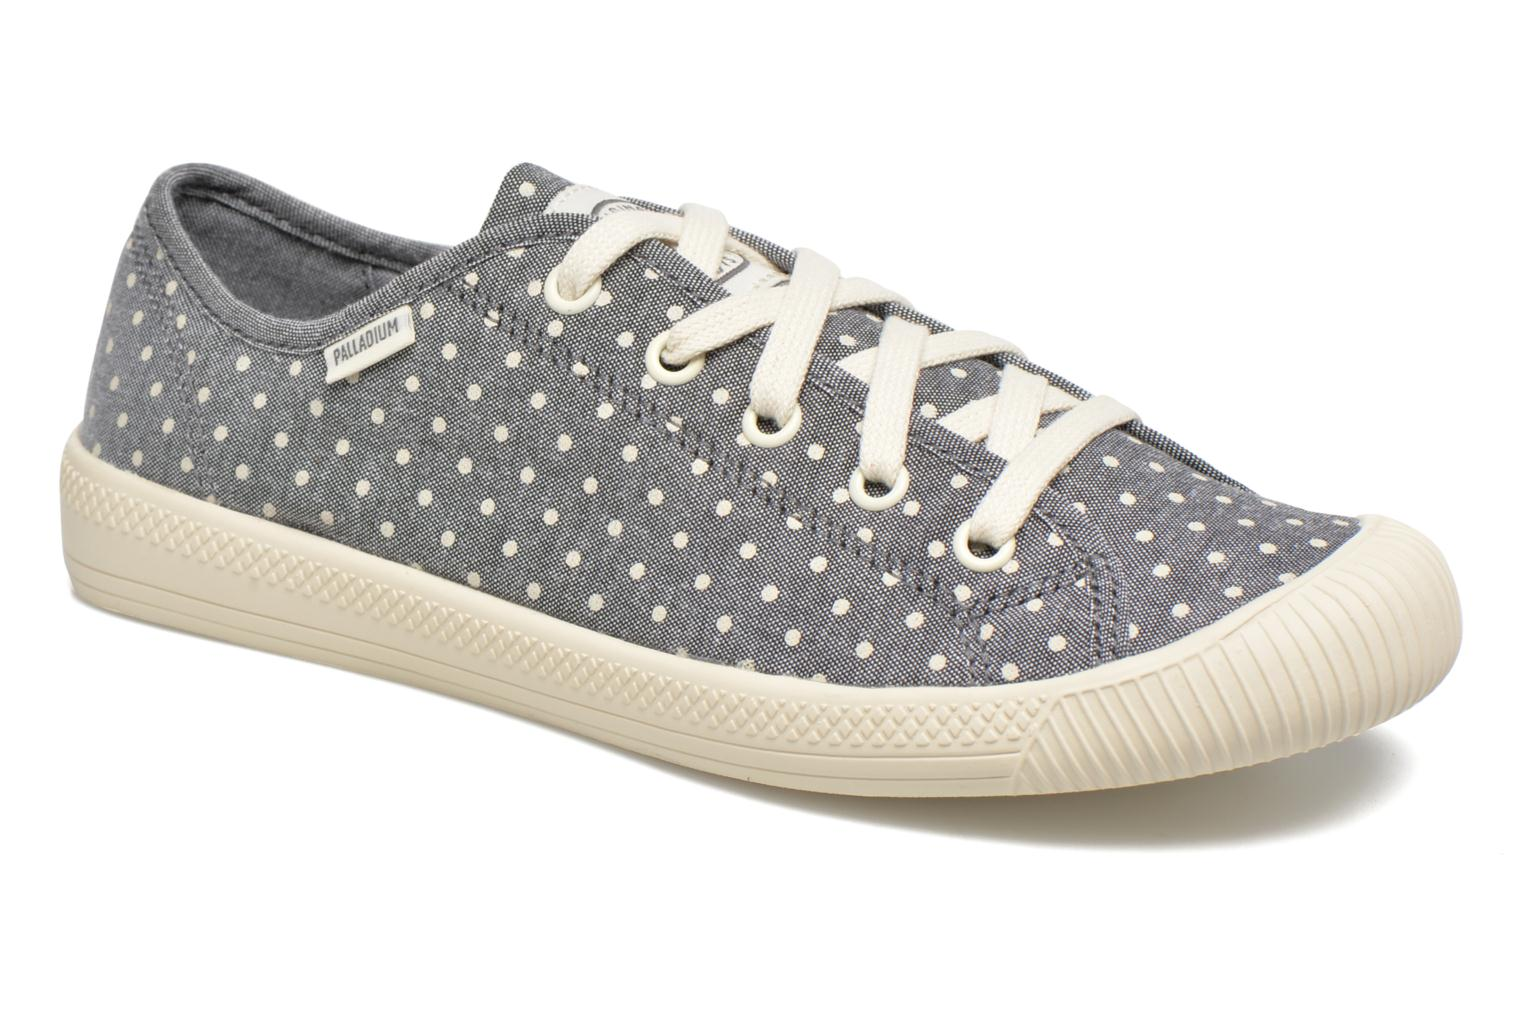 Flex Lace Pd W Gray/Antique White/Polka